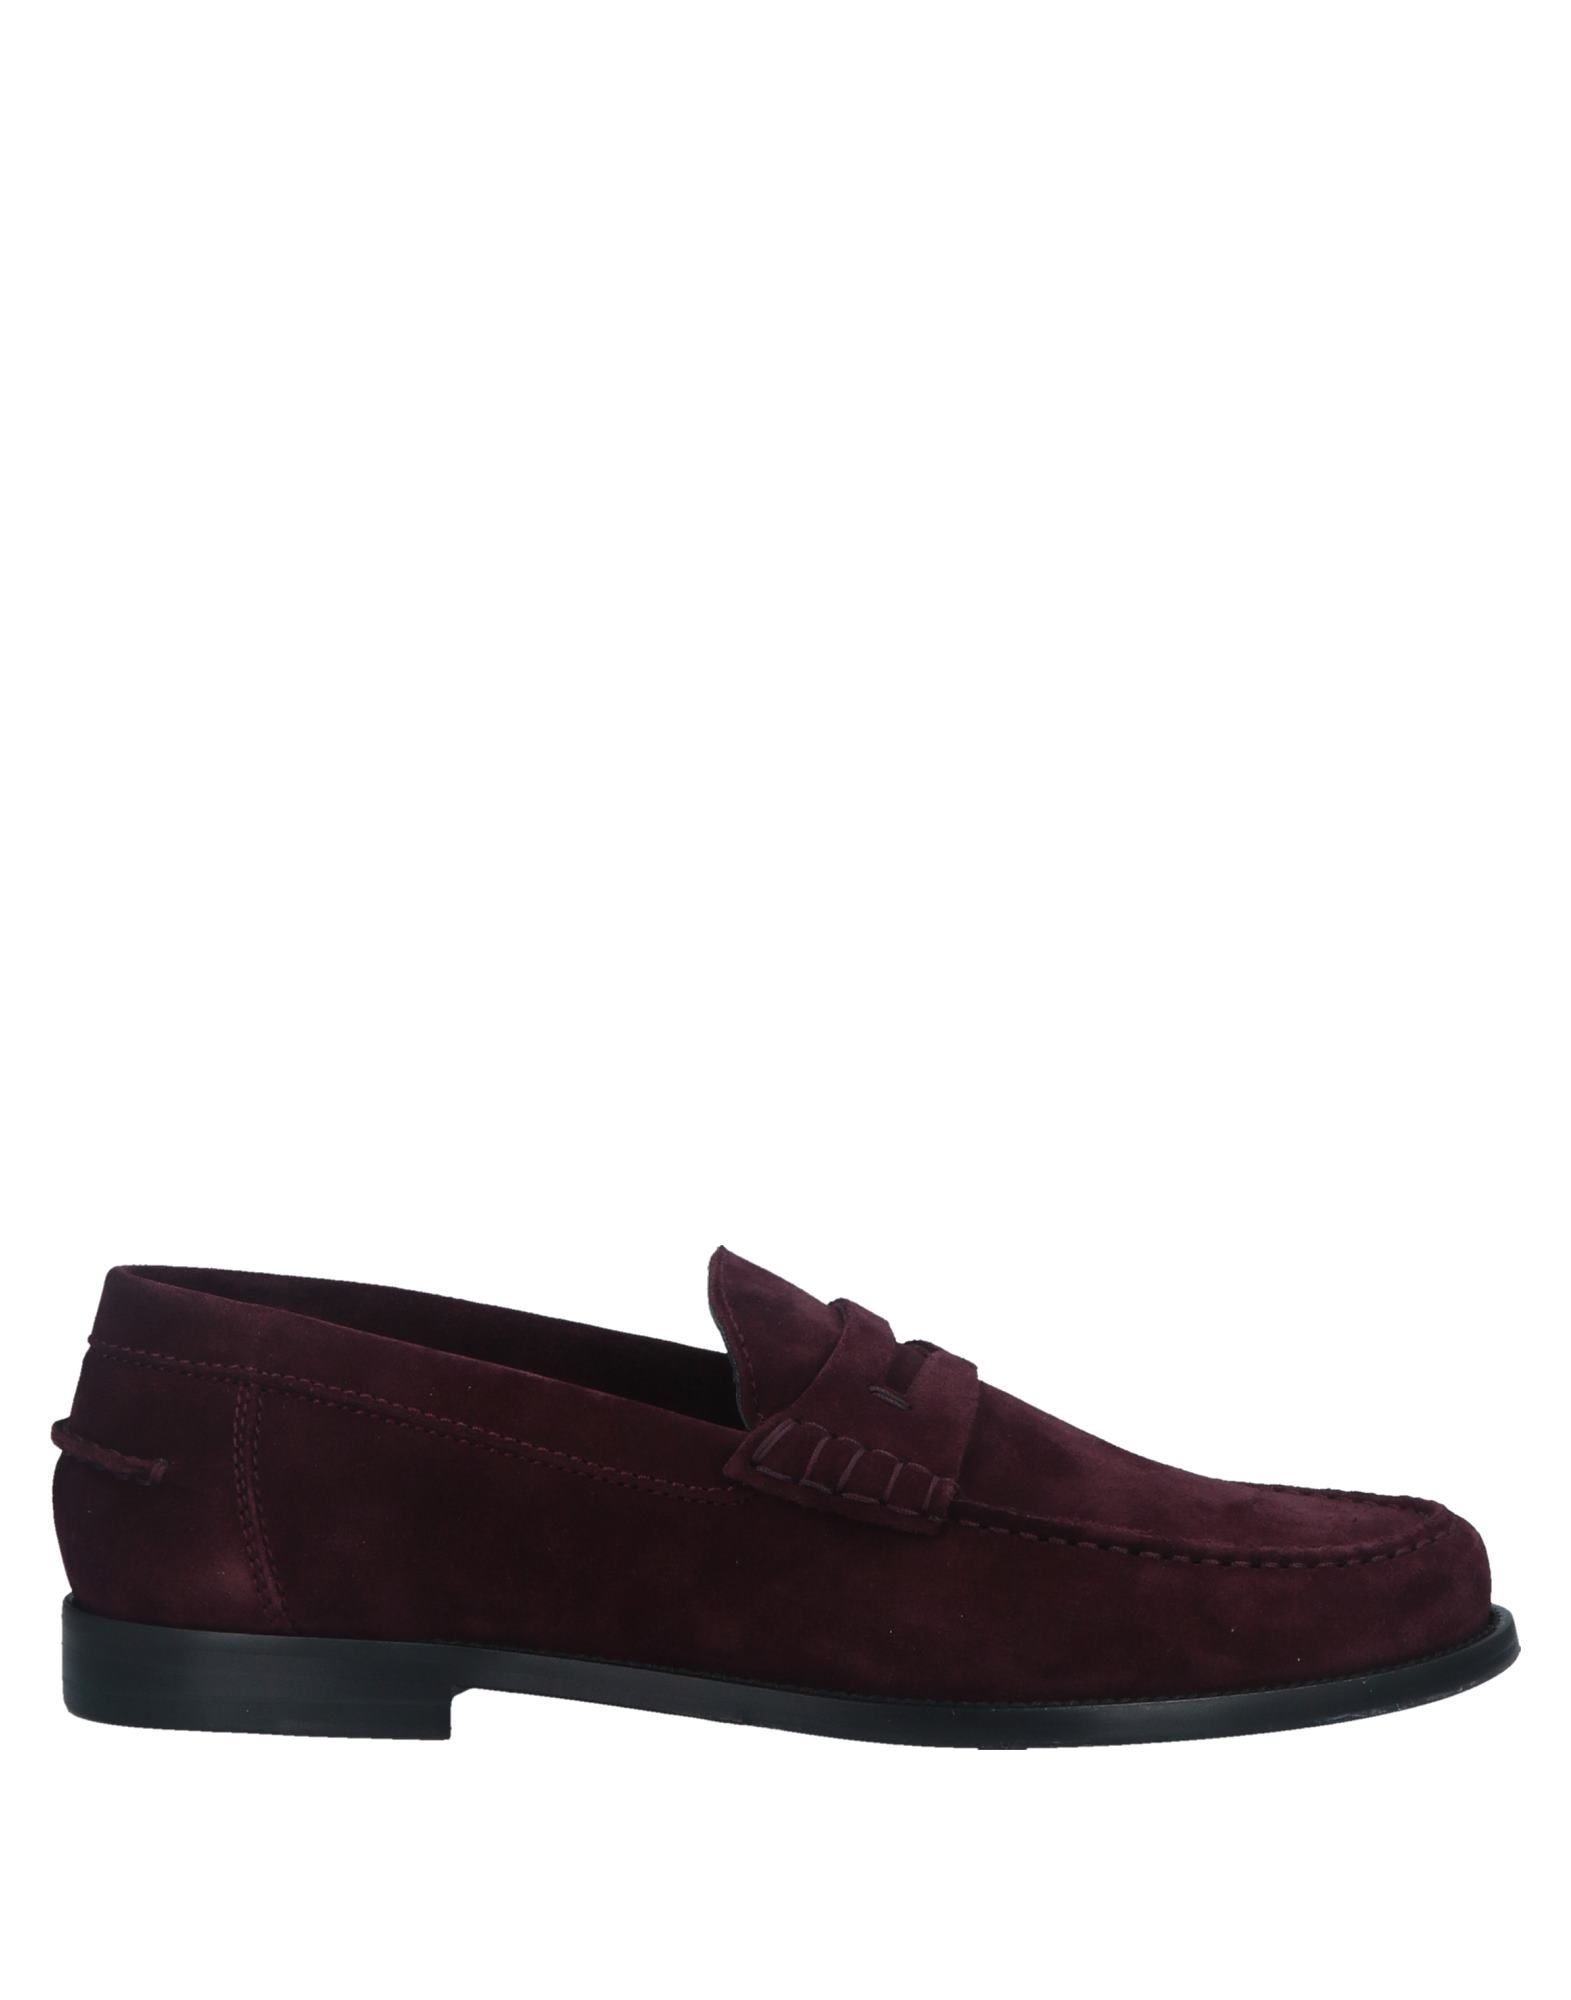 Sergio Rossi Garnet Leather Loafers